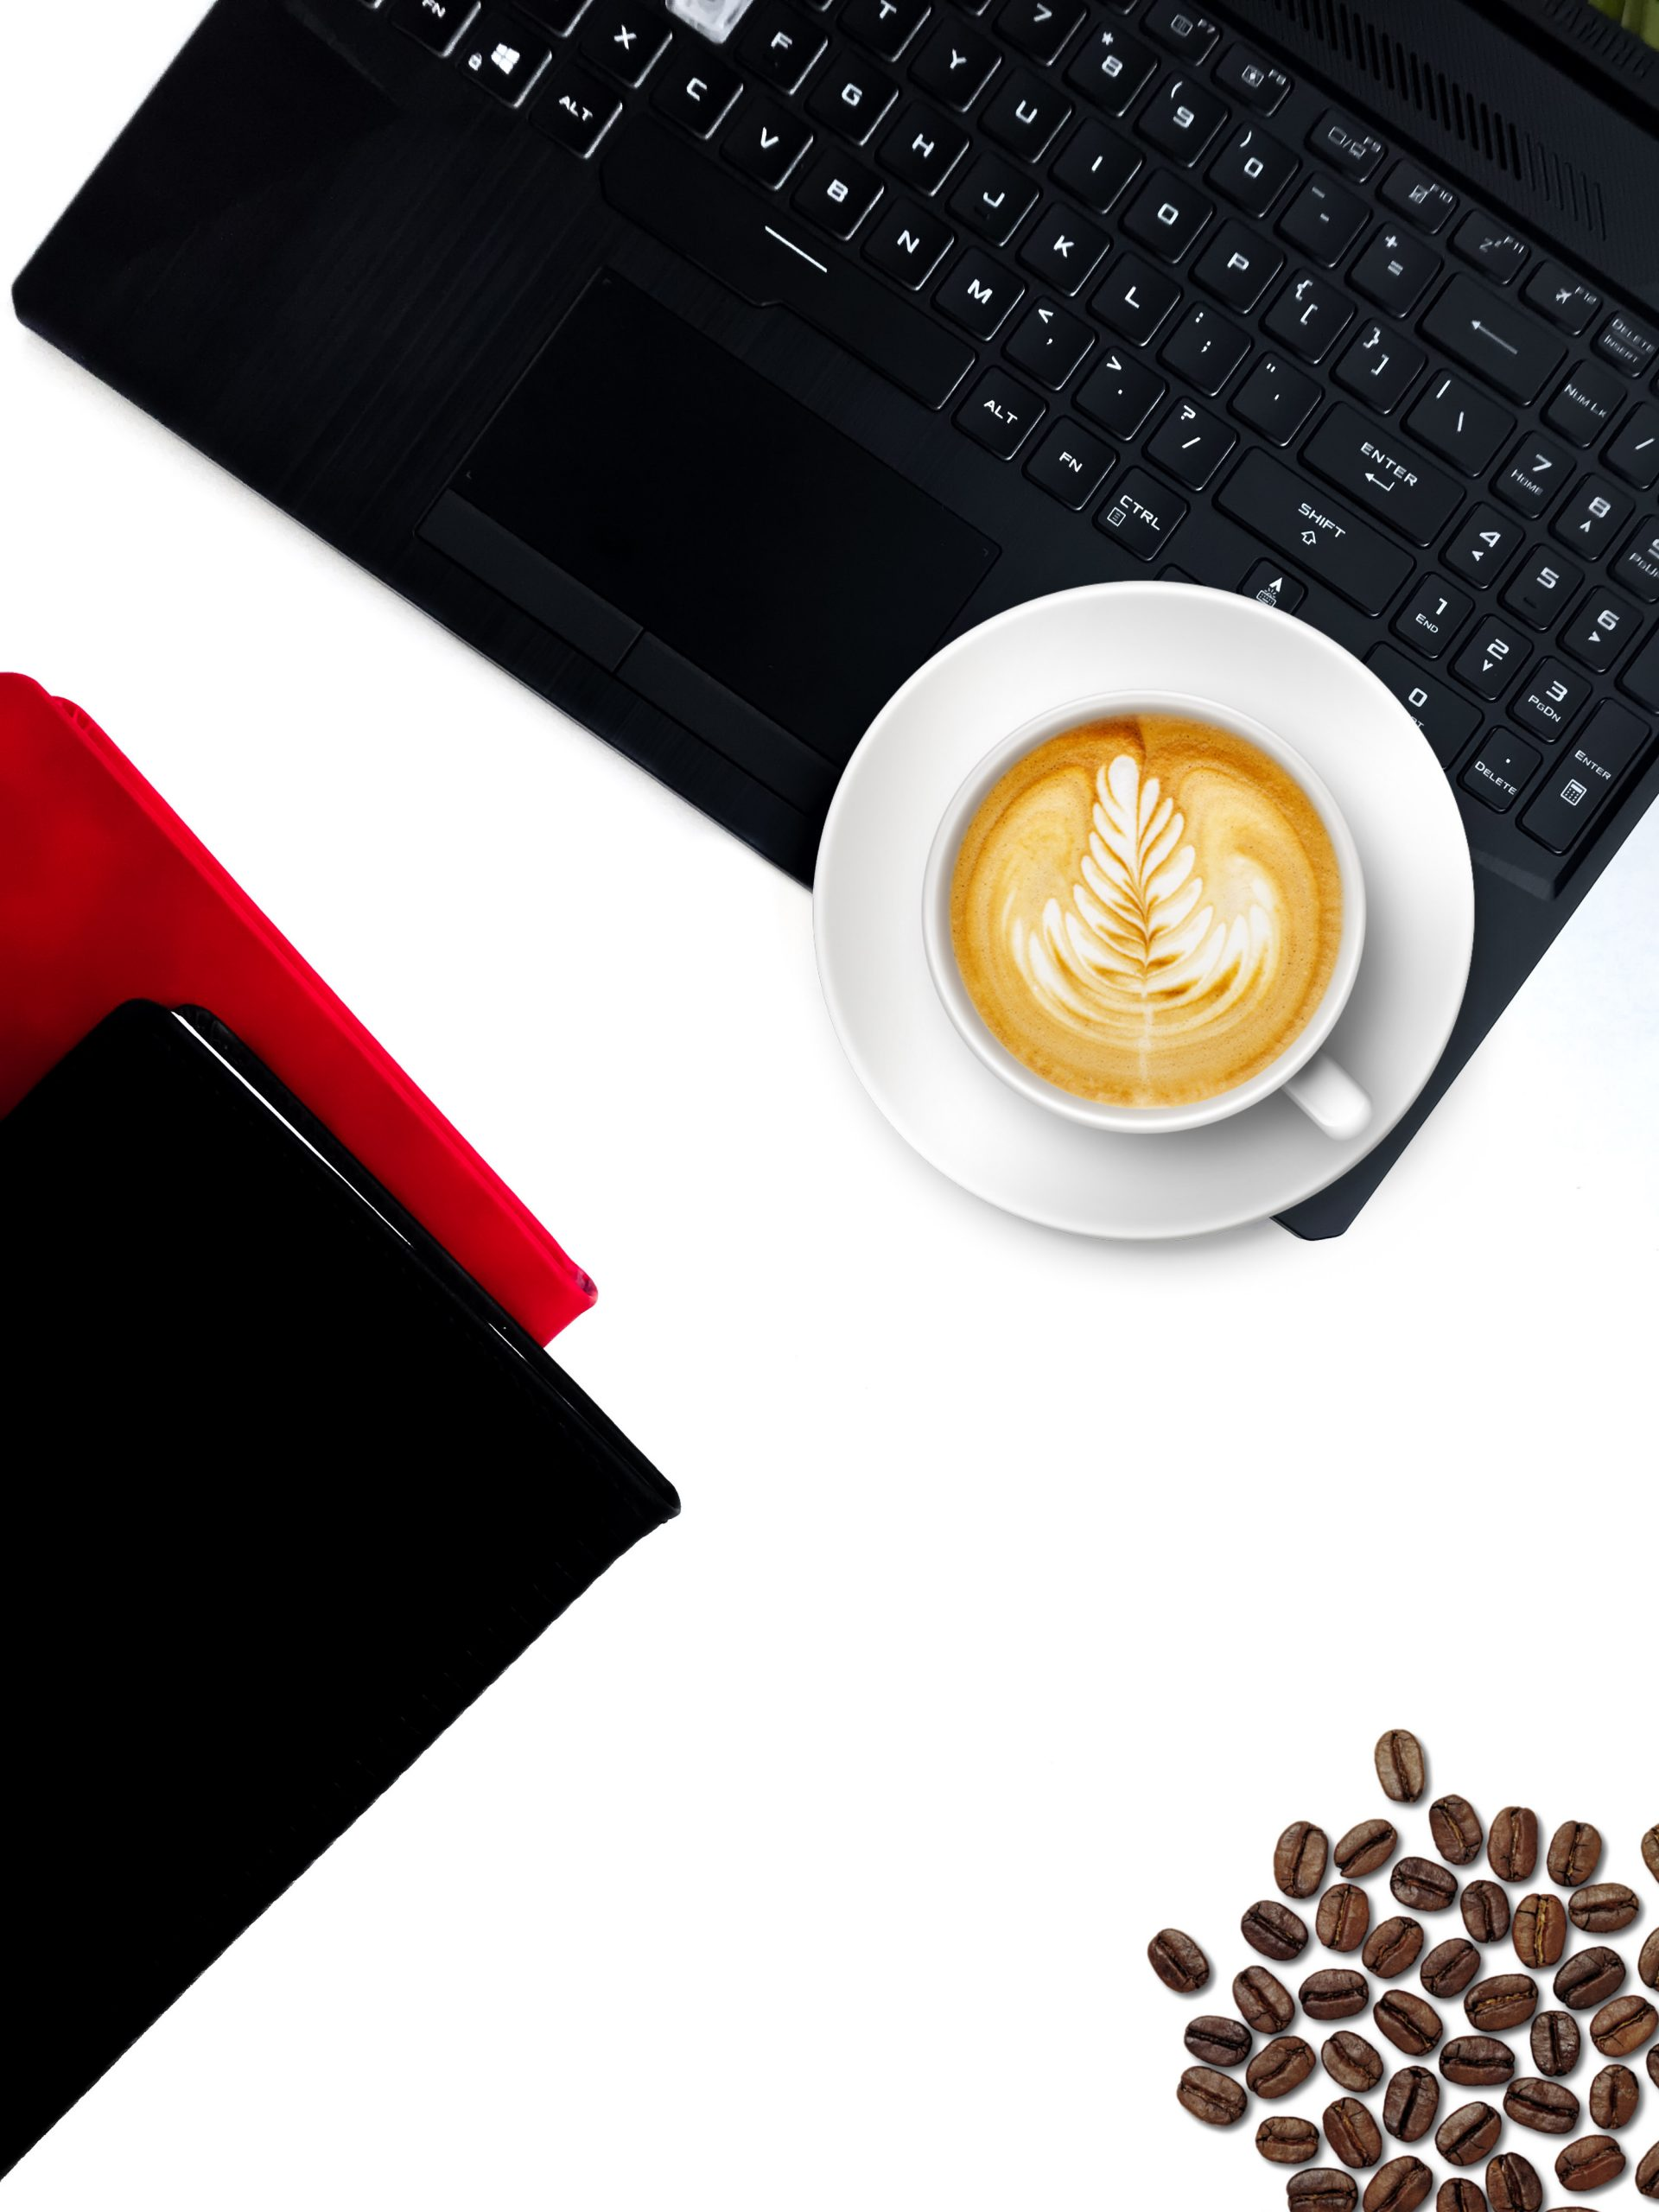 Laptop and Latte art